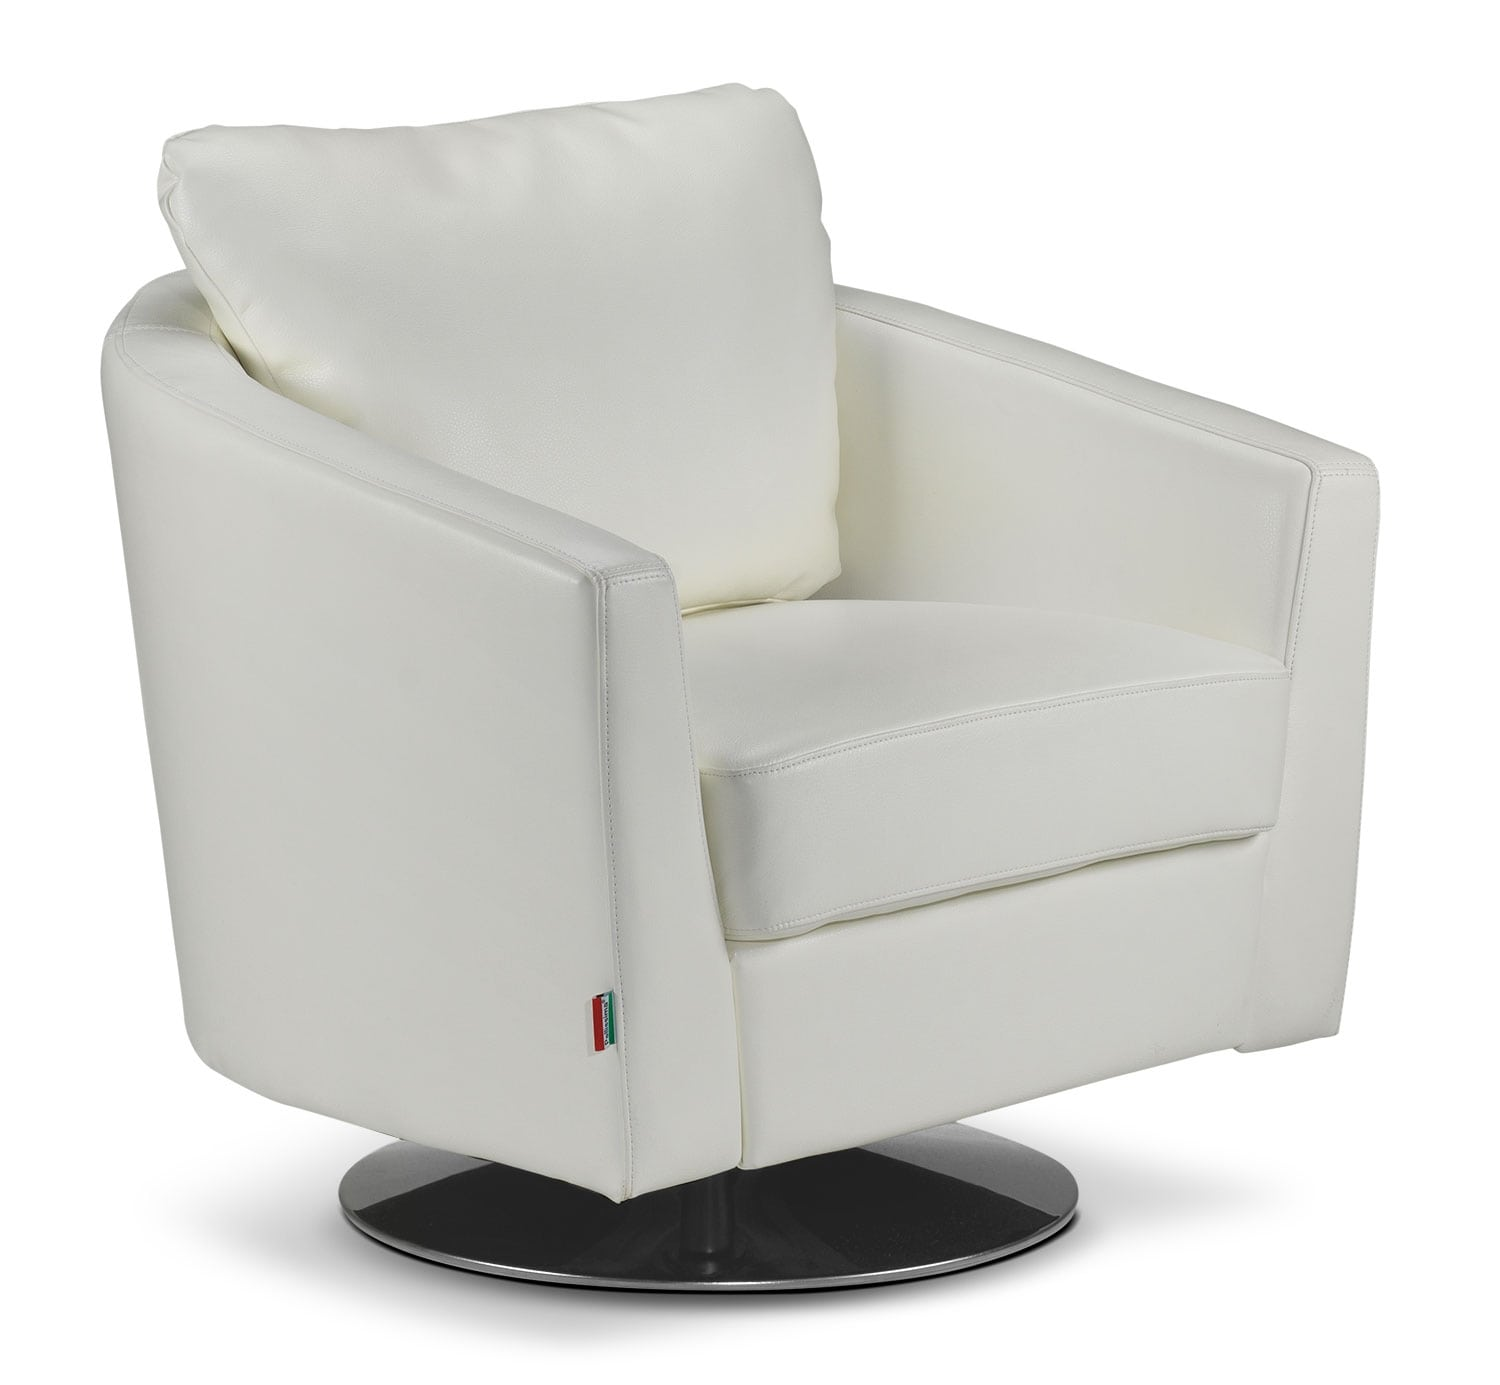 Bel-Air Swivel Chair - White